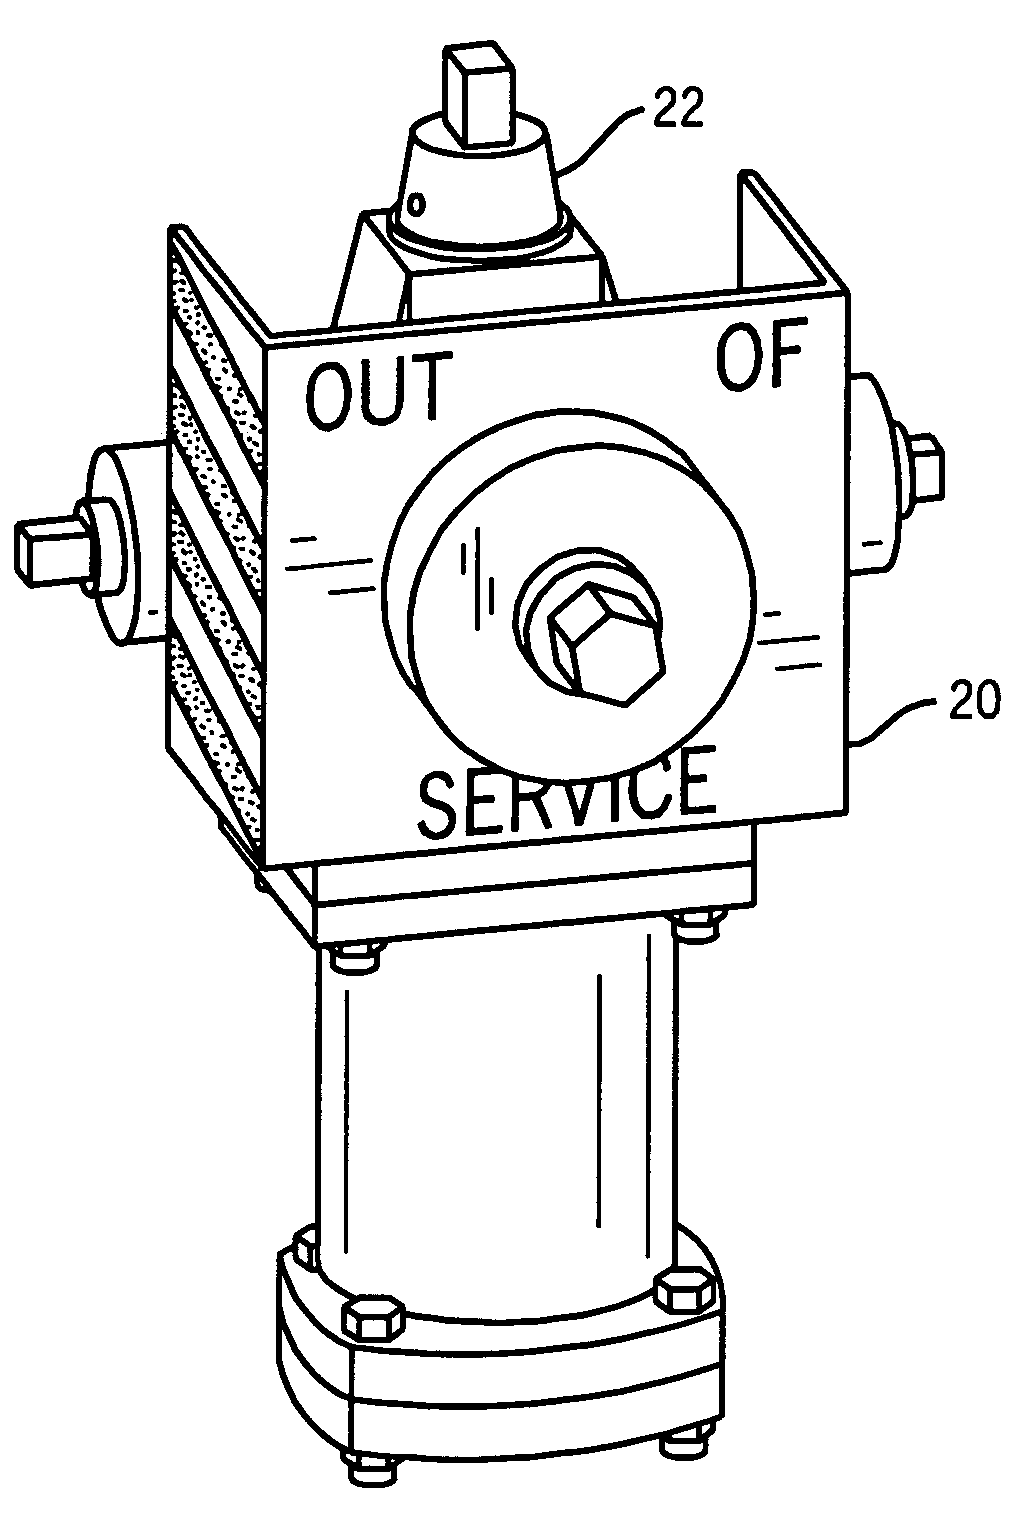 fire hydrant coloring pages firefighter profession coloring pages printable games fire coloring pages hydrant